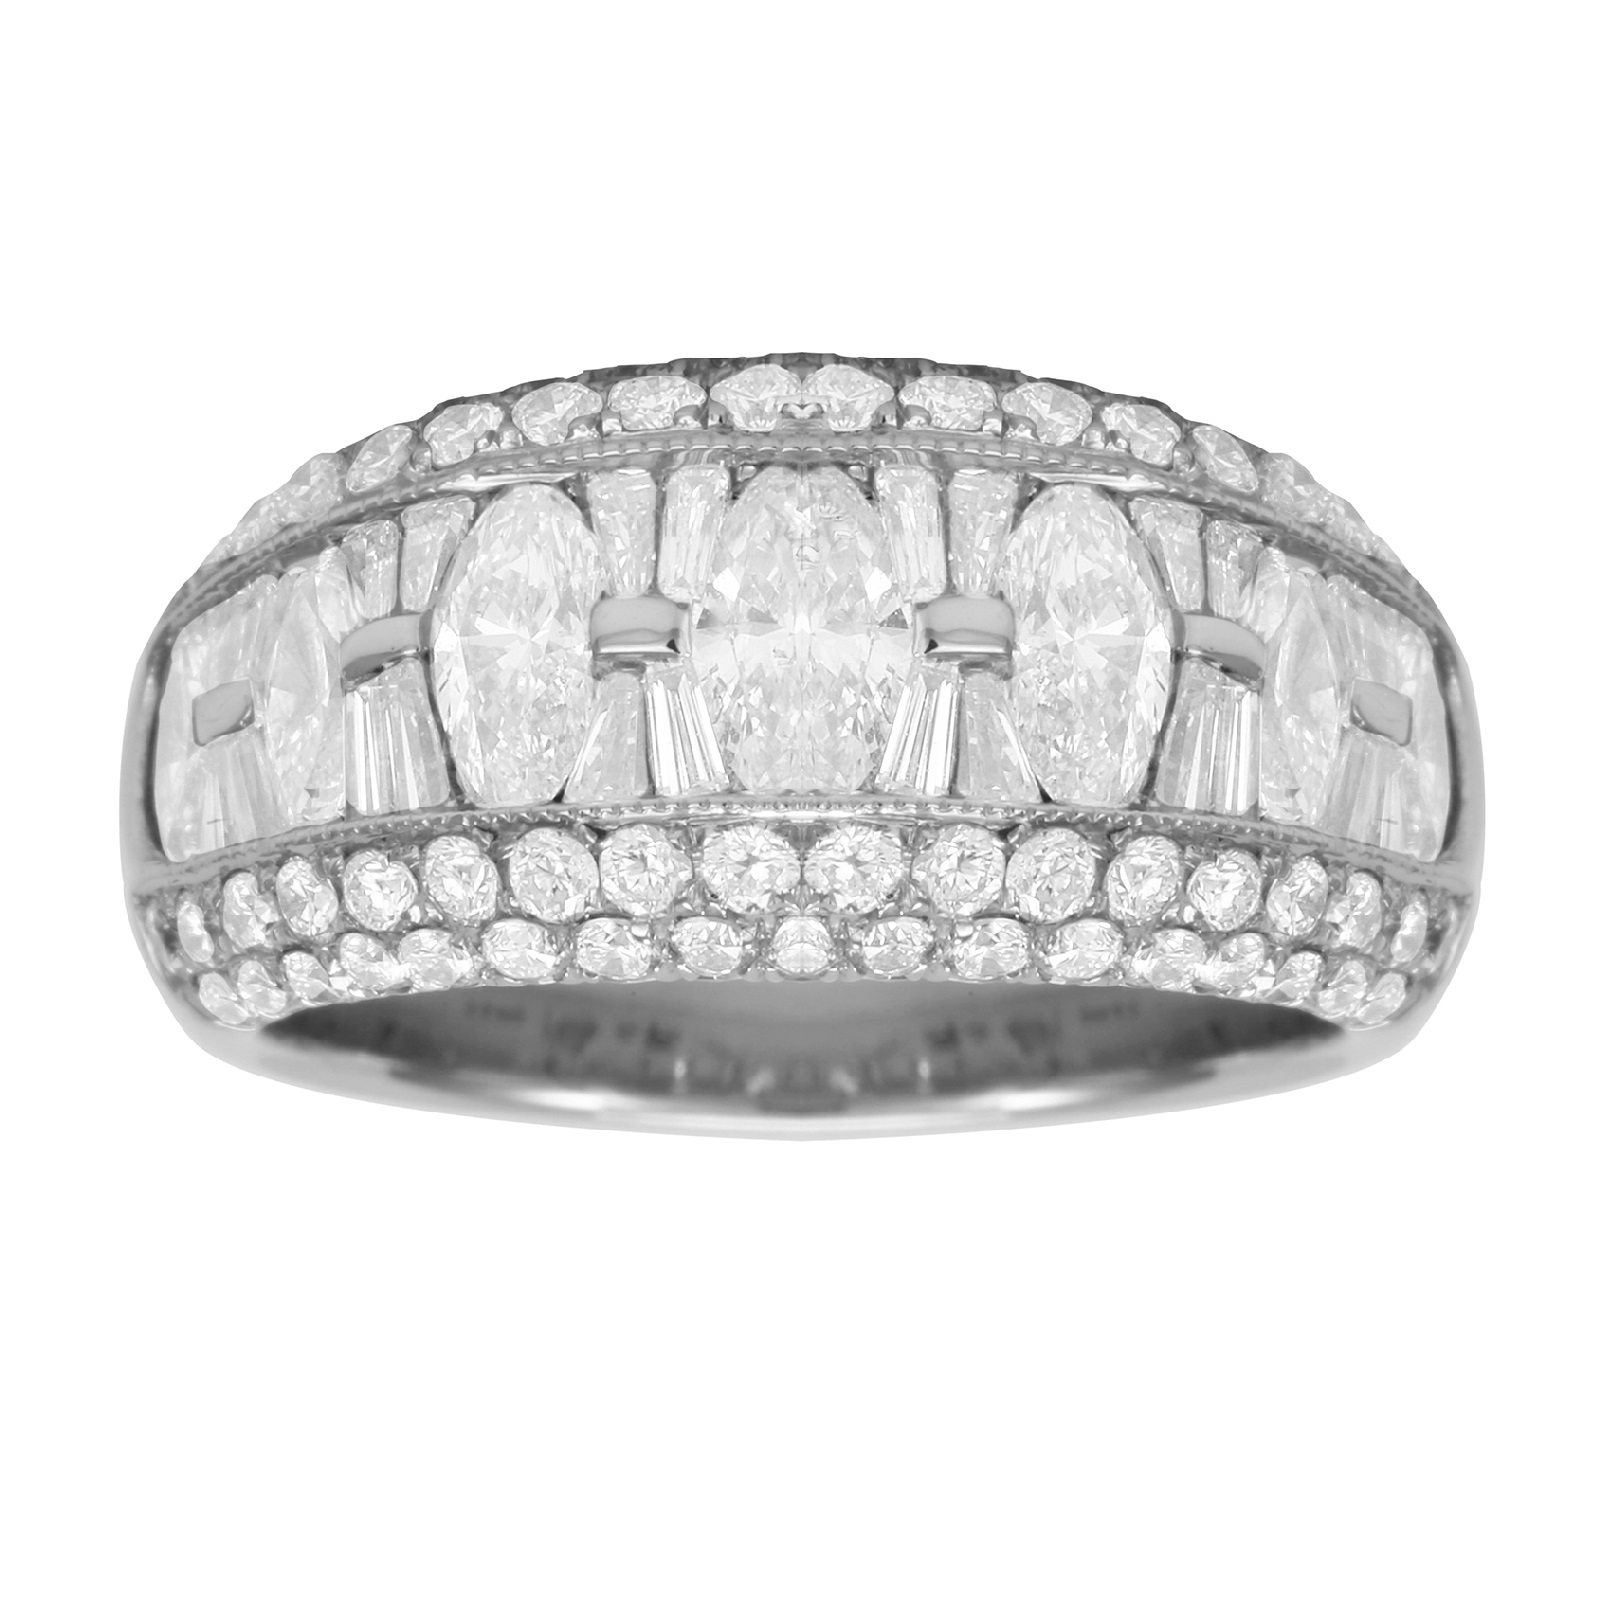 Platinum 2.10ct Marquise Cut Eternity Ring - Size K.5